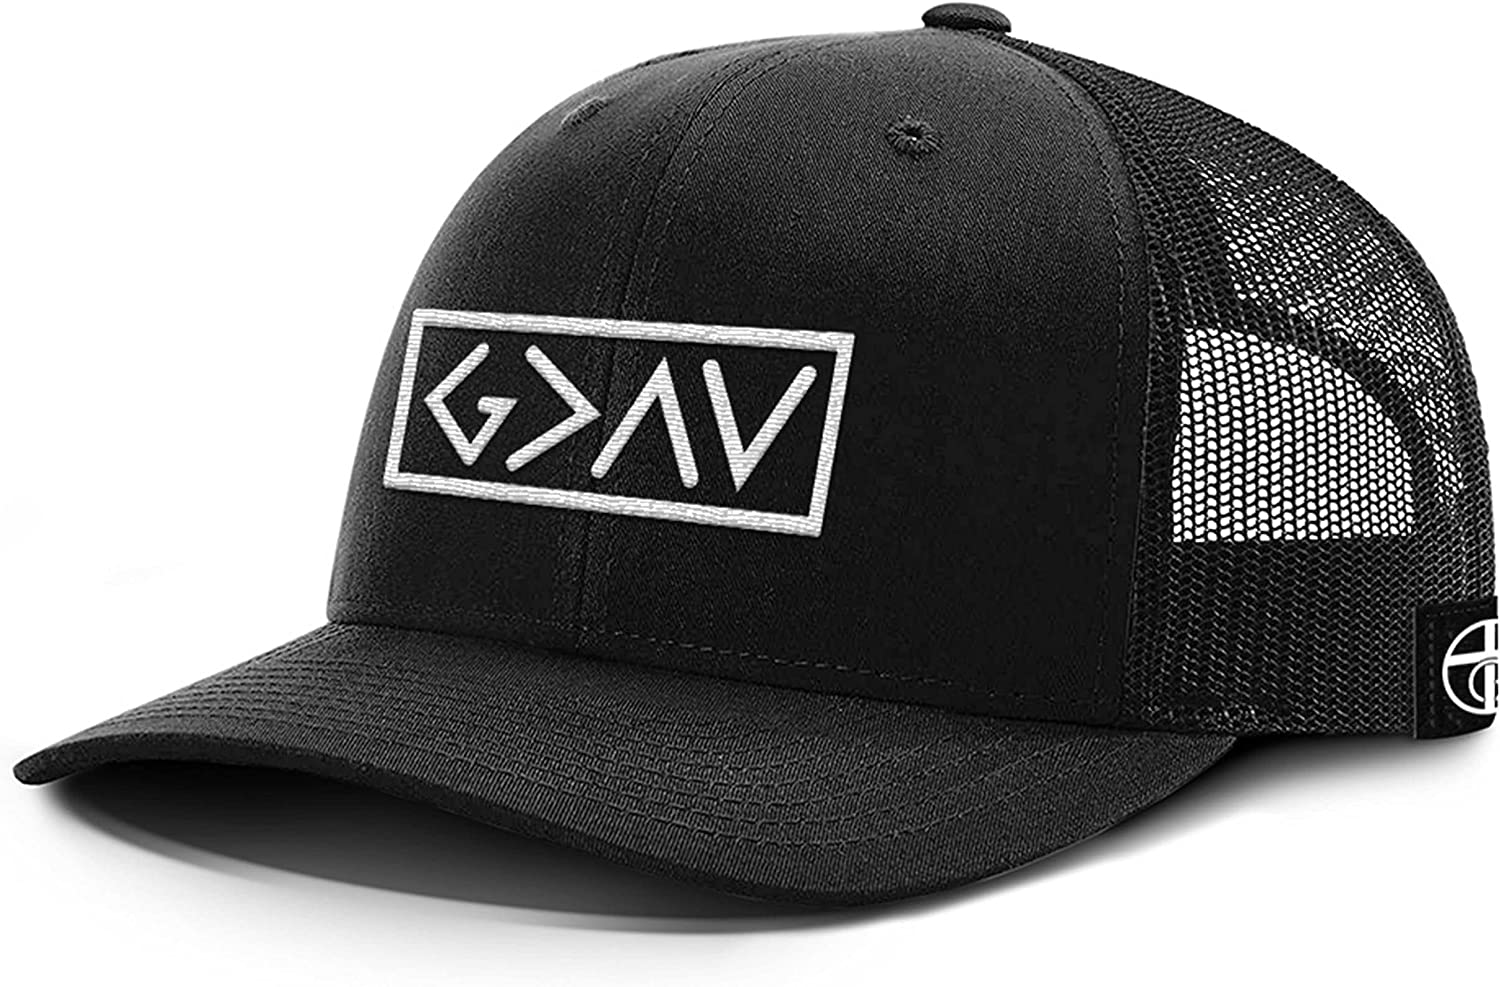 One True God God is Greater Than Highs and Lows Back Mesh Hat Christian Faith Baseball Cap